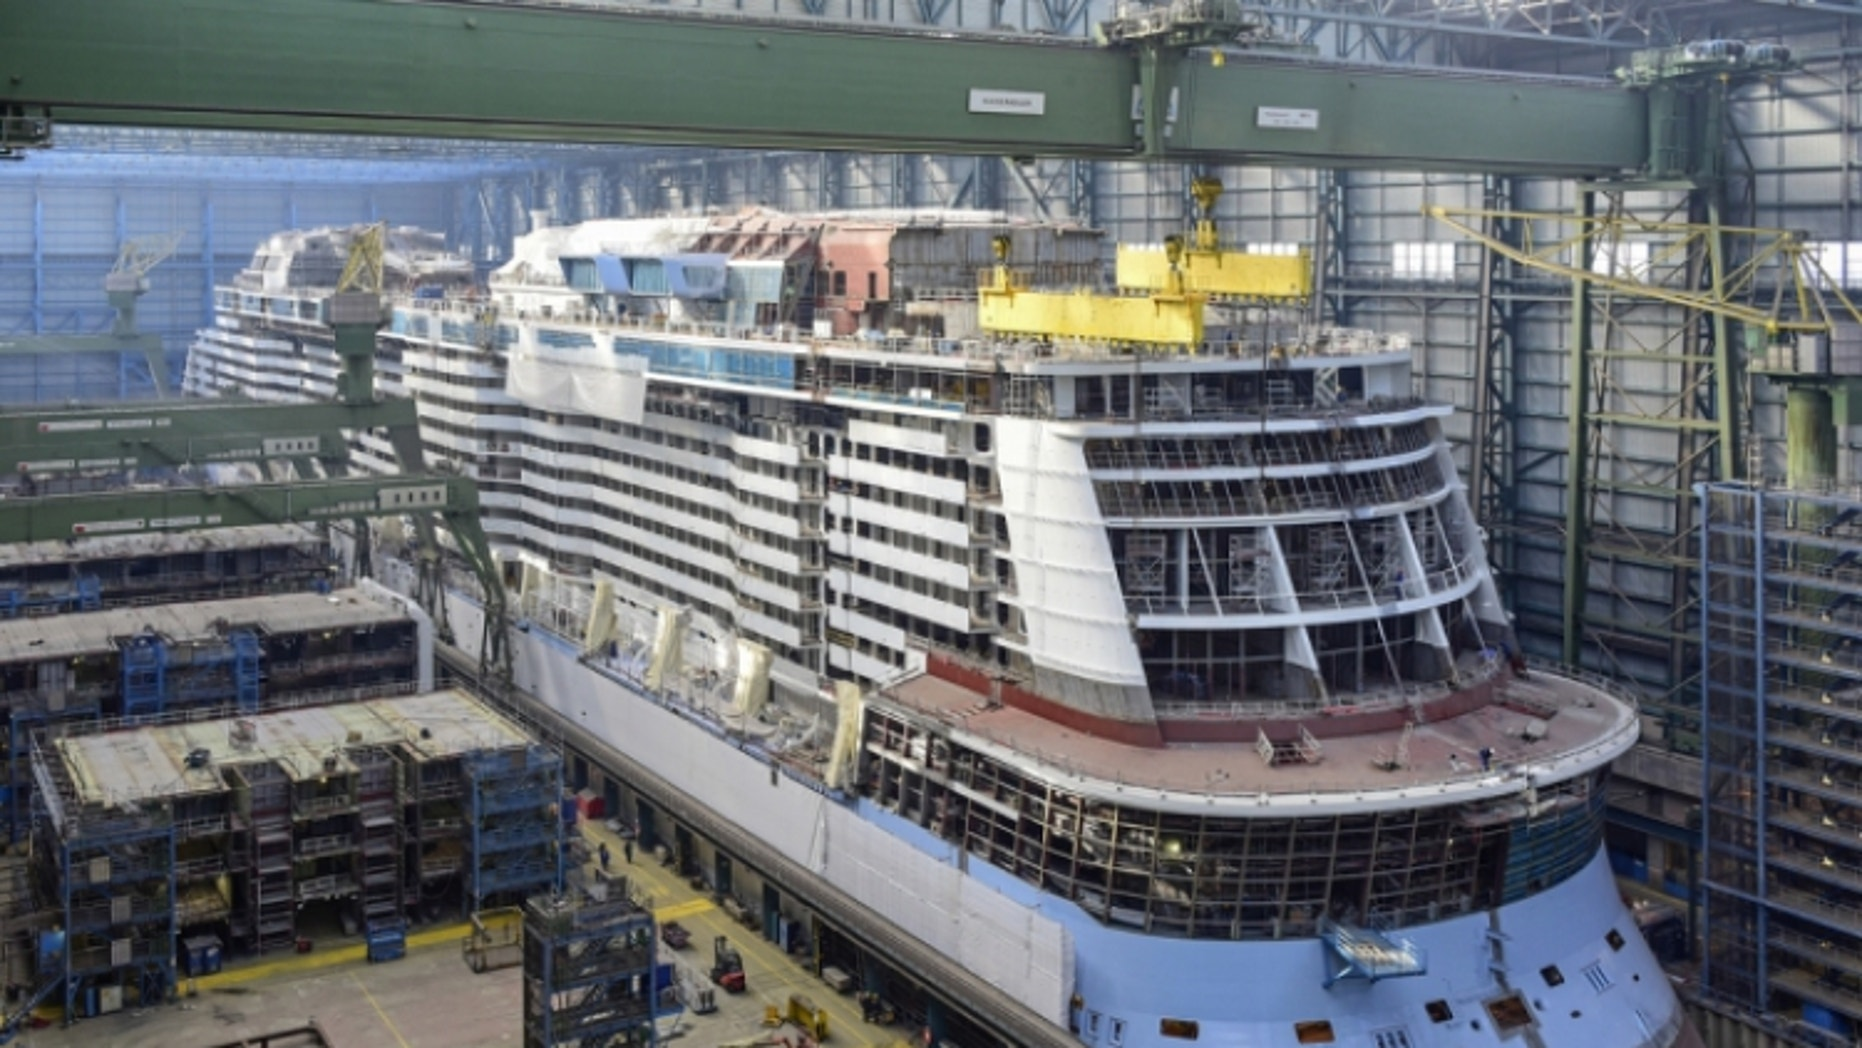 The Ovation of the Seas will launch April 2016.